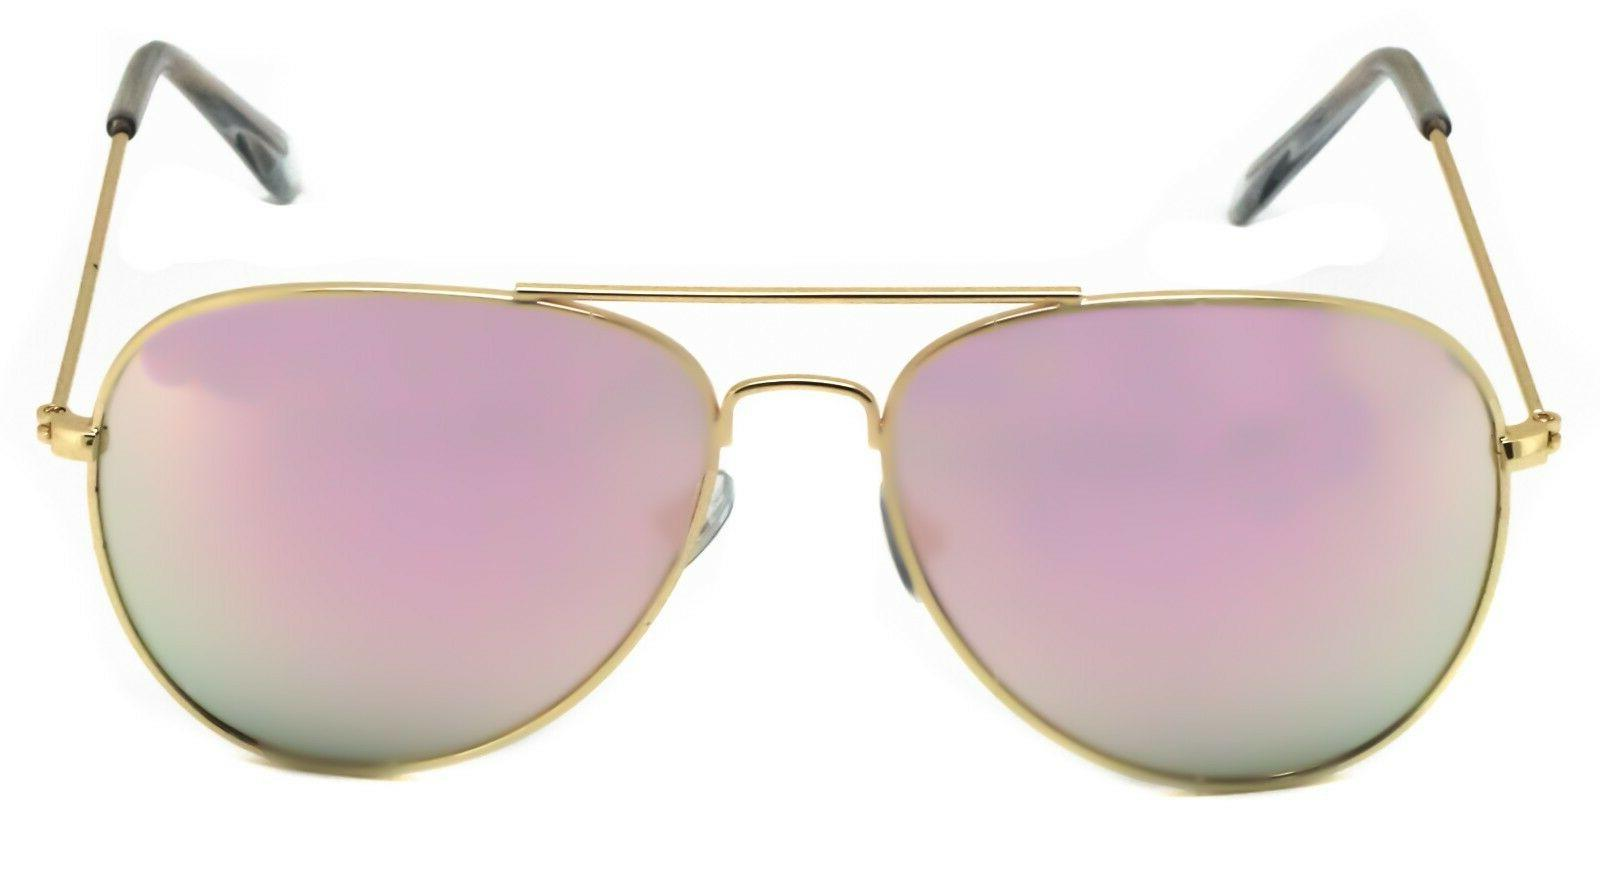 New Aviator Unisex Iridescent Lens Men Fashion Frame